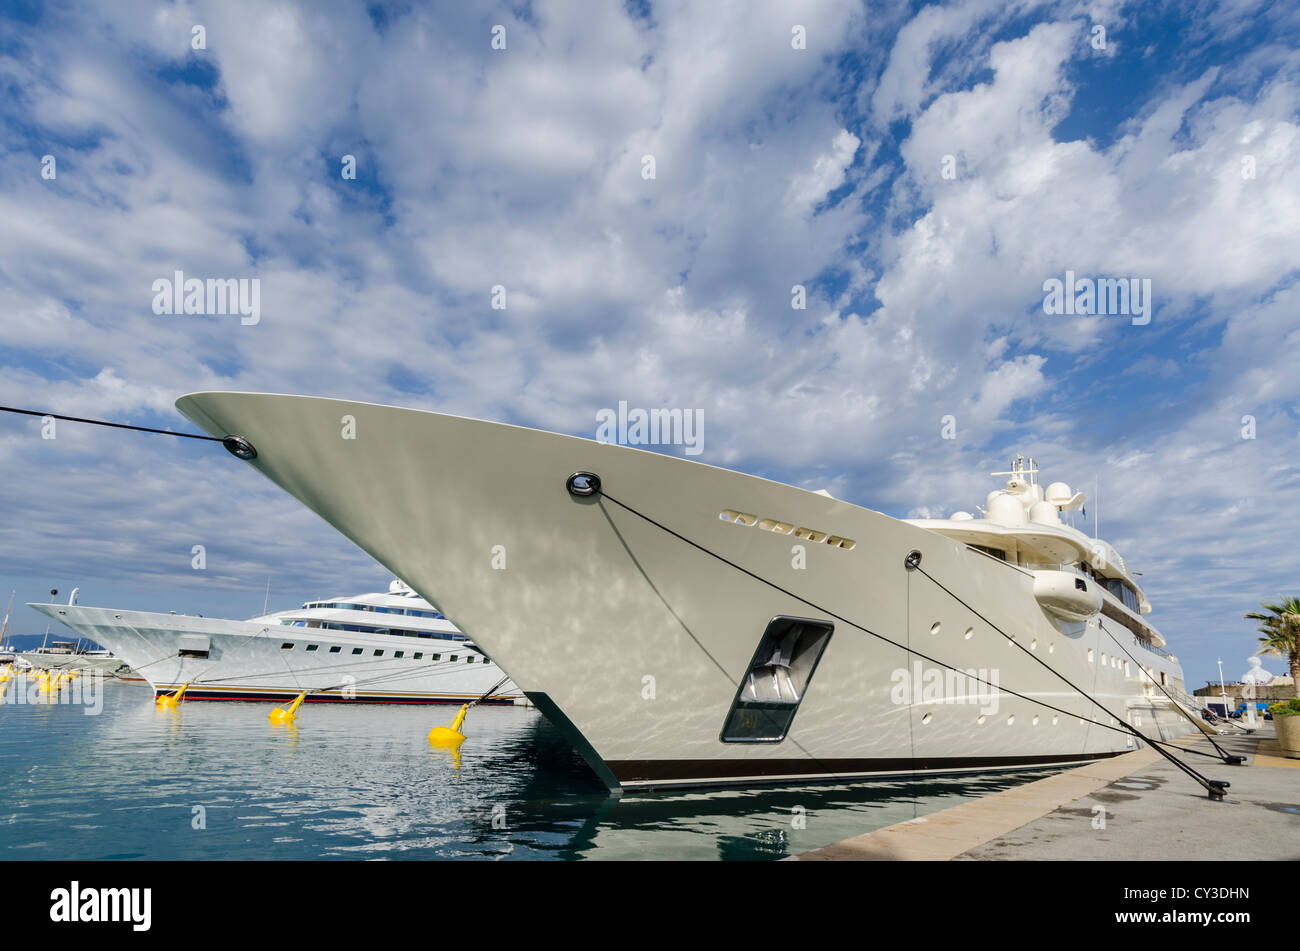 The Dilbar and other luxury yachts anchored in Antibes harbour, Cote d'Azur, France. - Stock Image